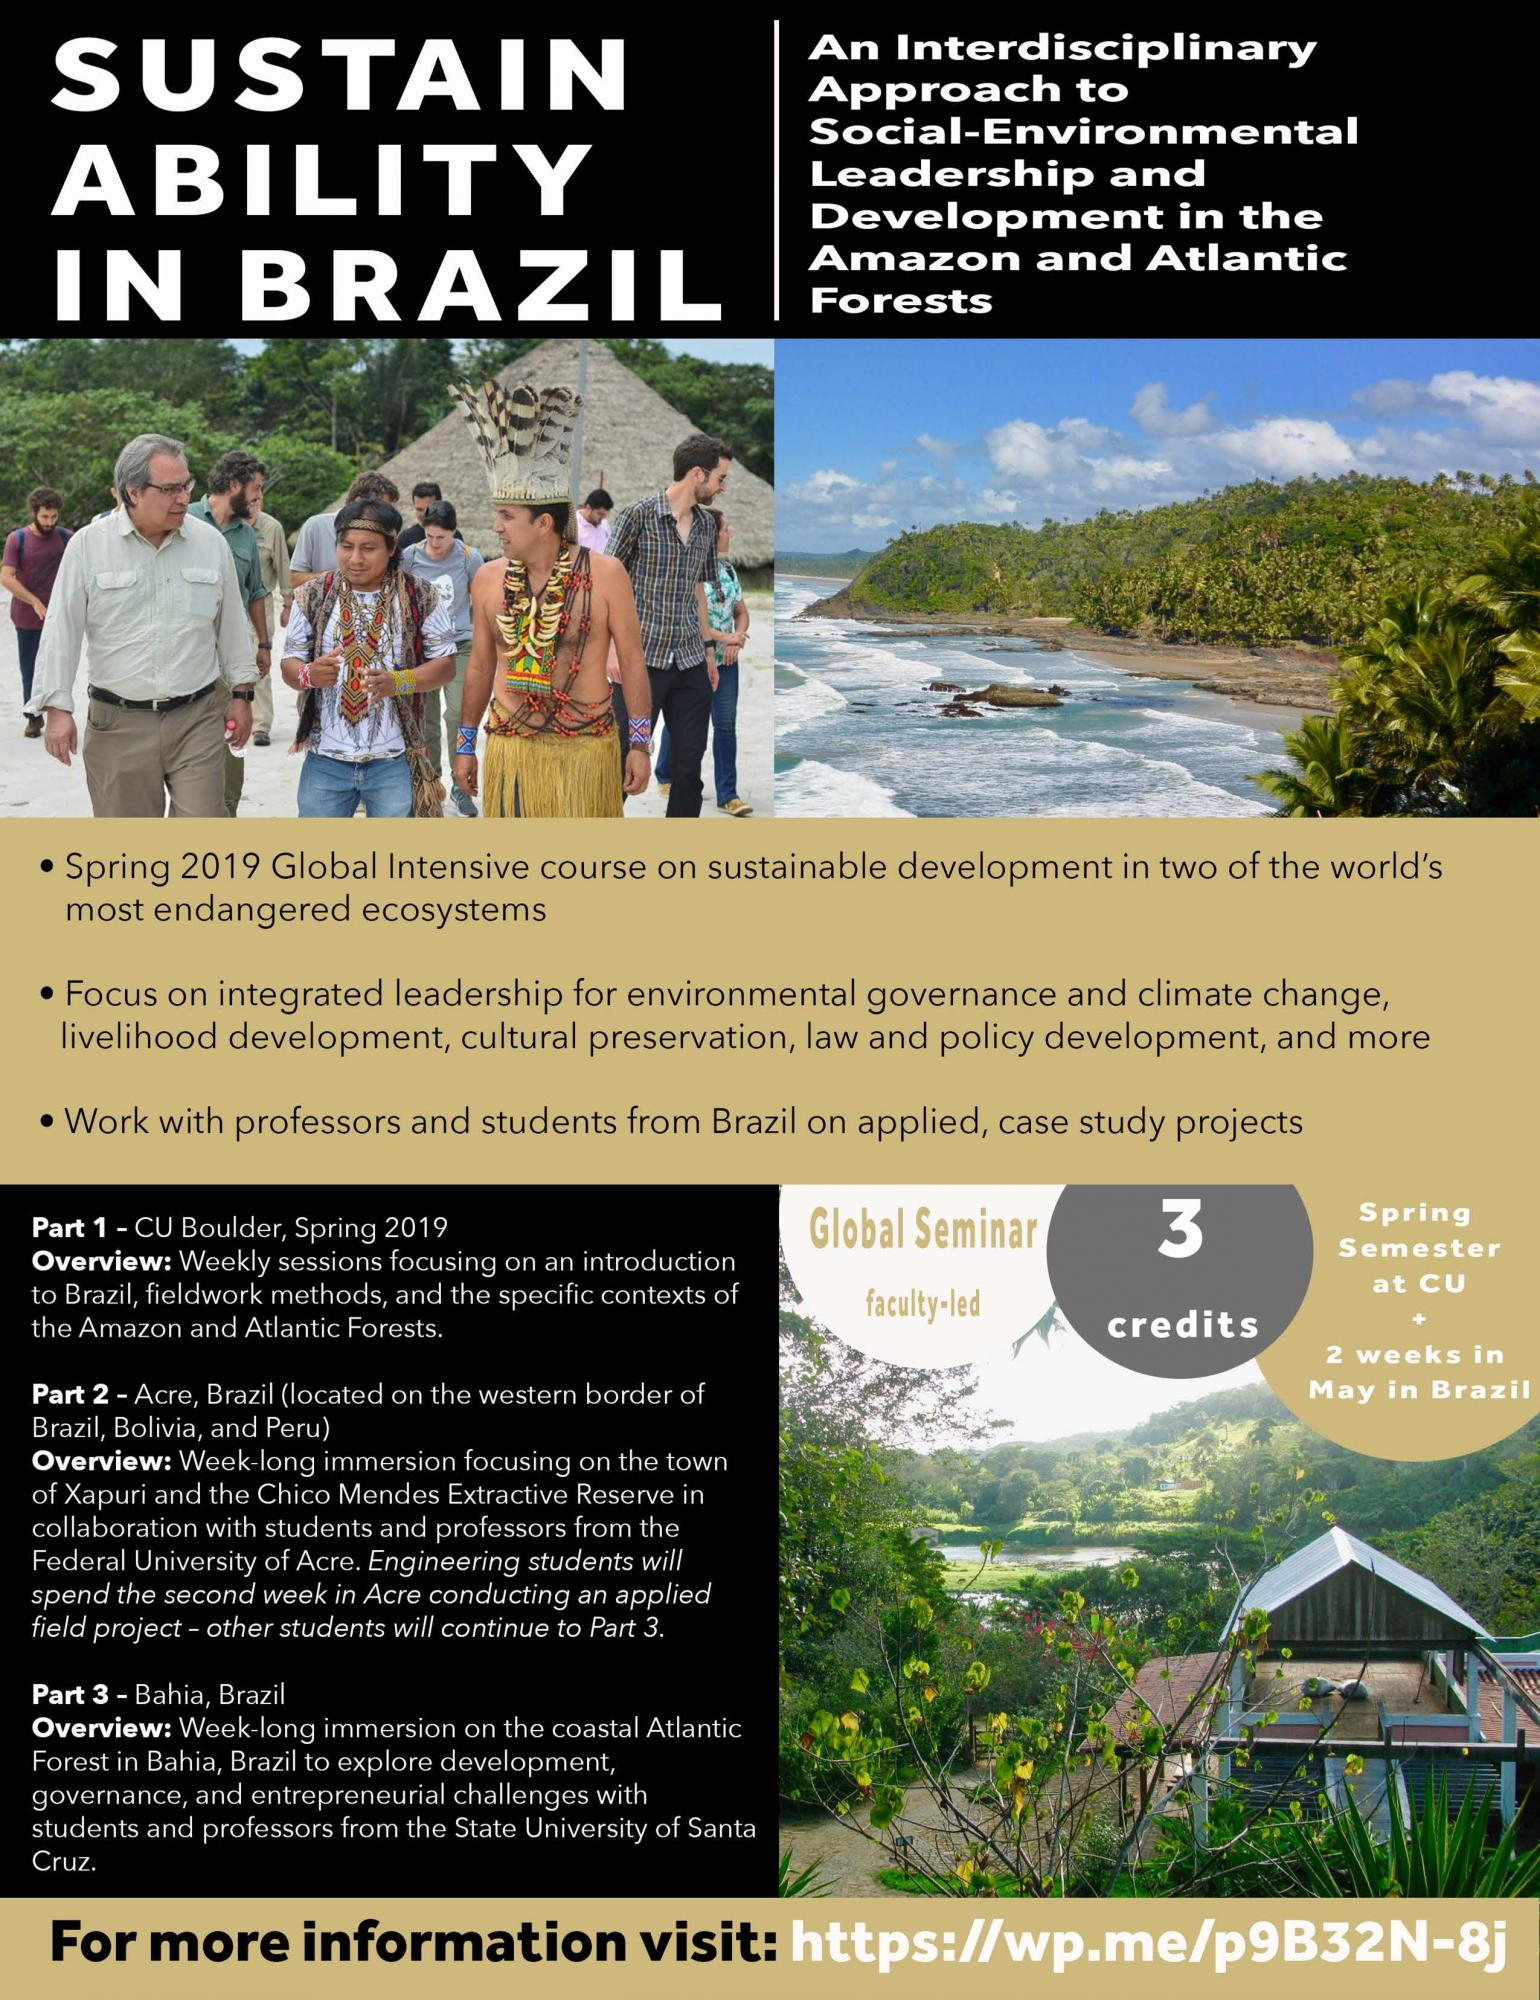 Sustainability Course in Brazil Poster